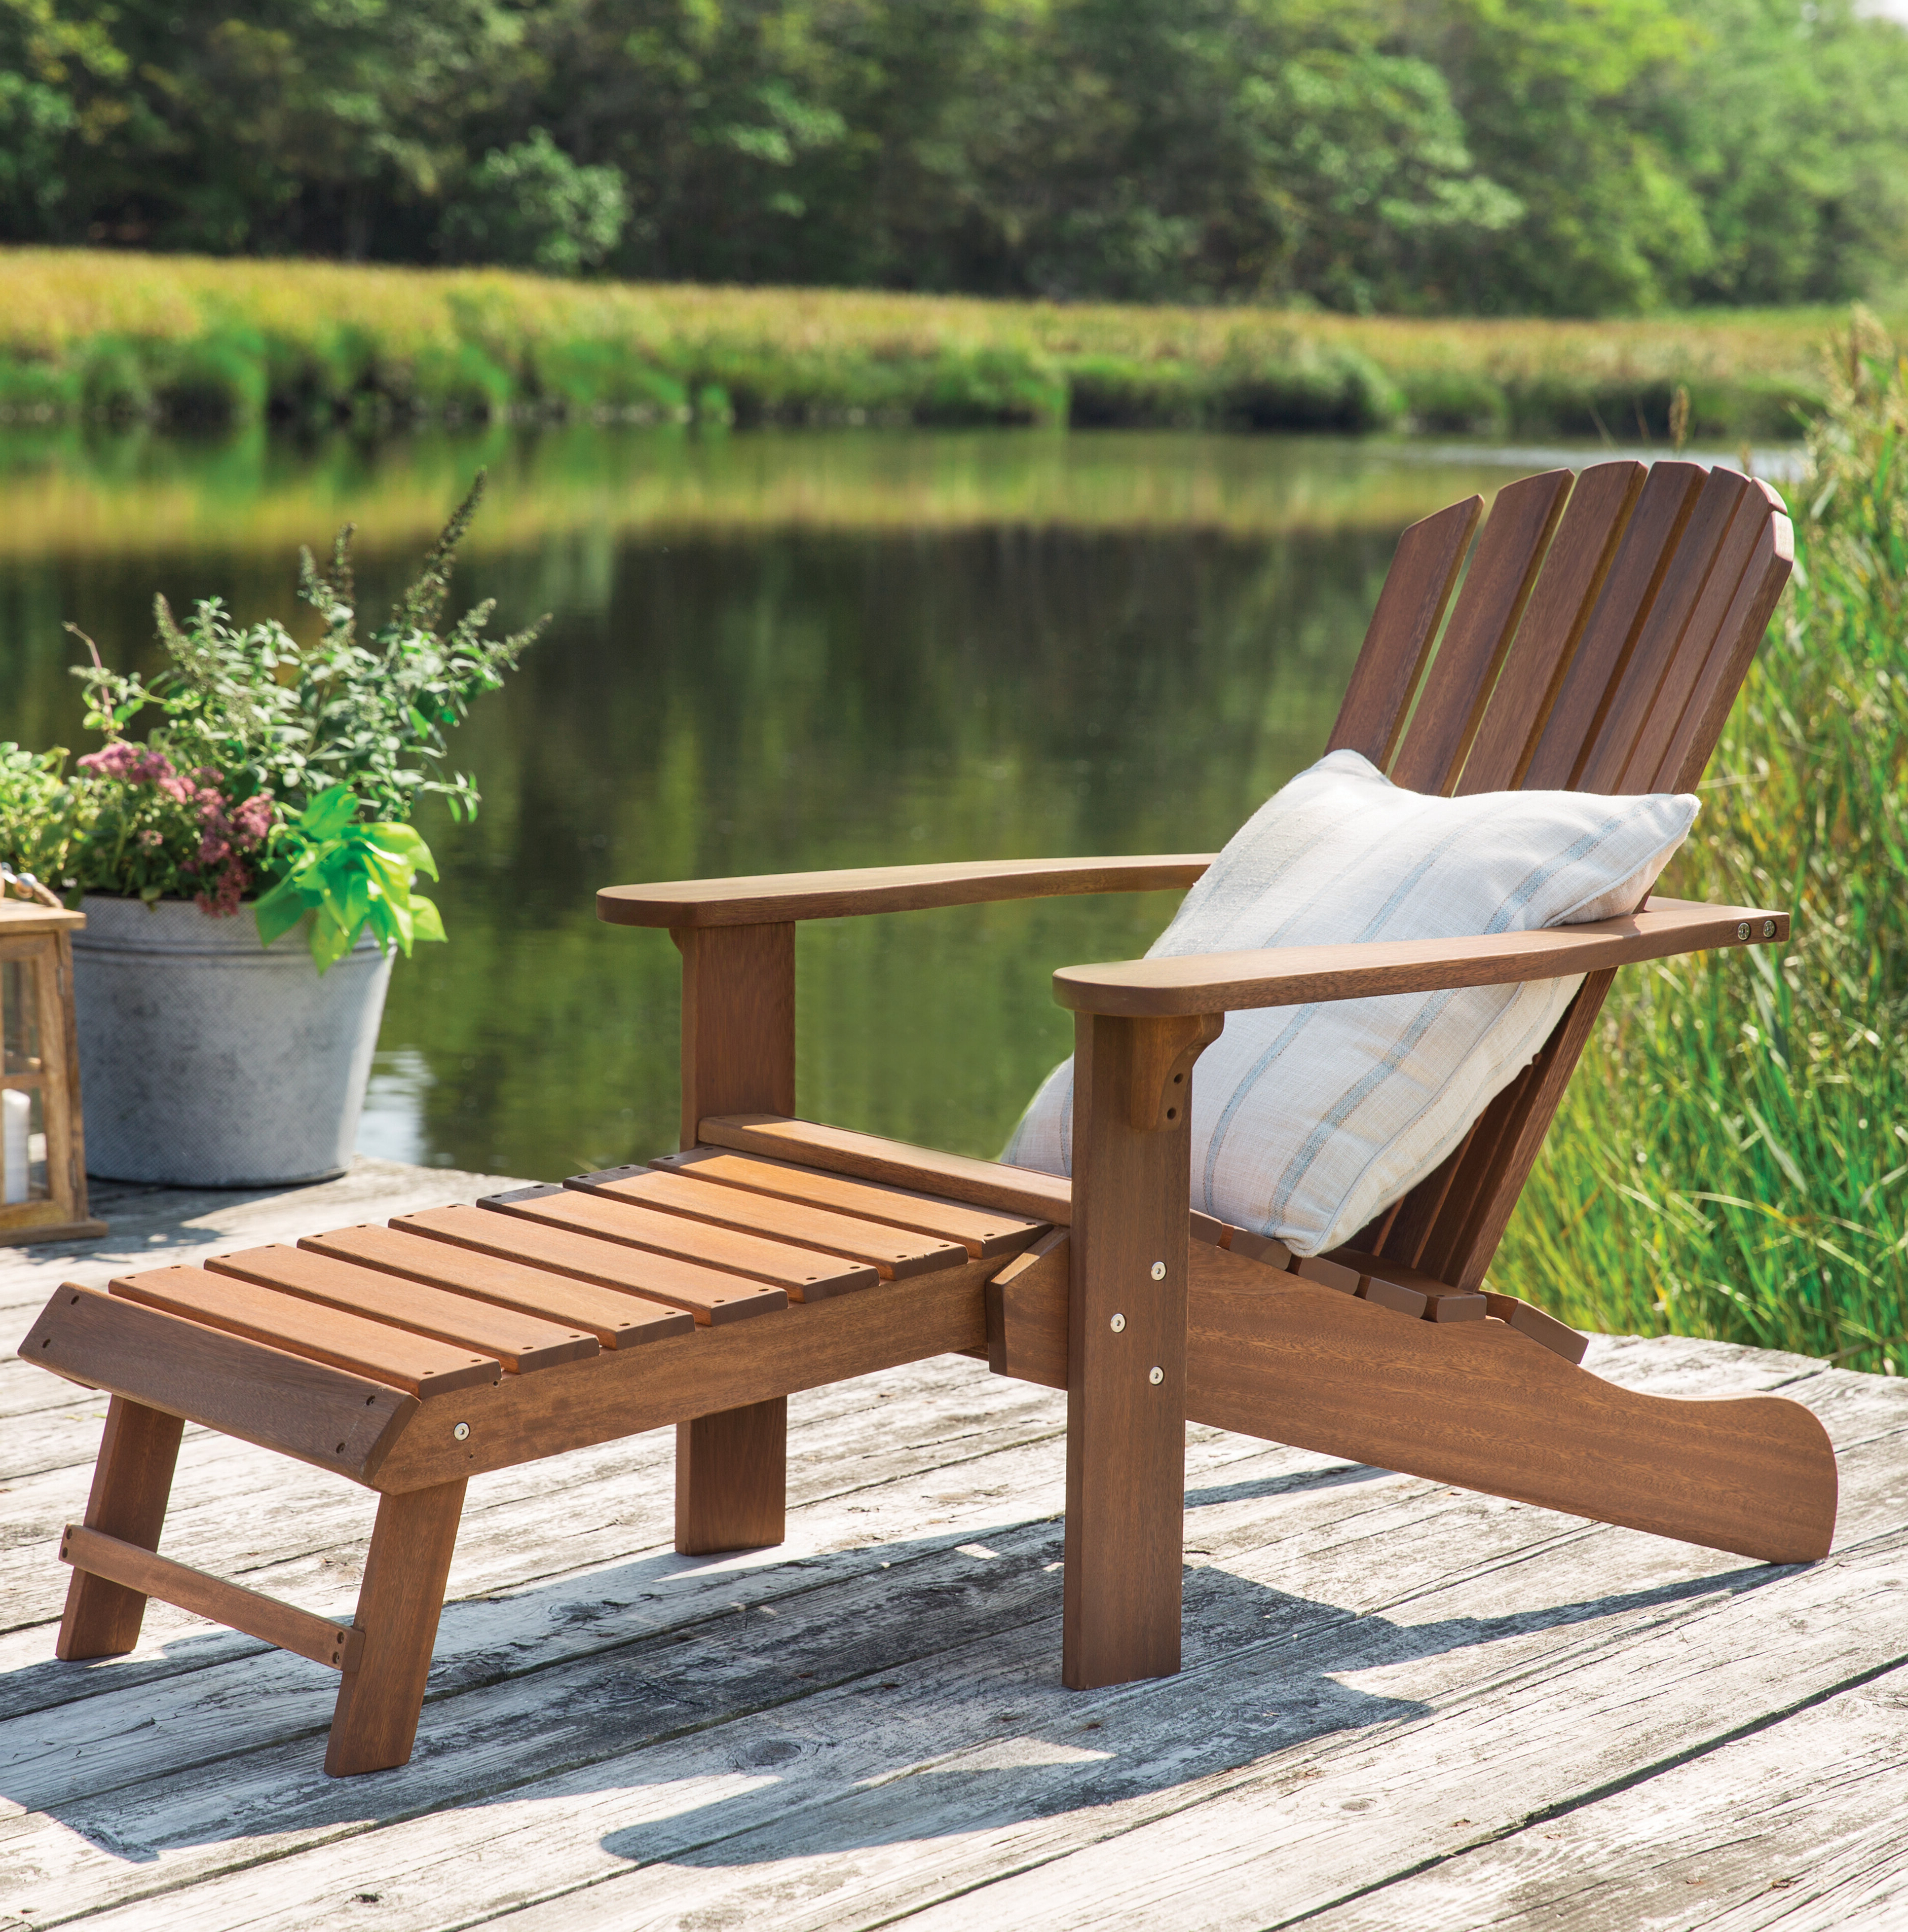 Delatorre Wood Adirondack Chair With Ottoman For Latest Mahogany Adirondack Chairs With Ottoman (View 2 of 25)